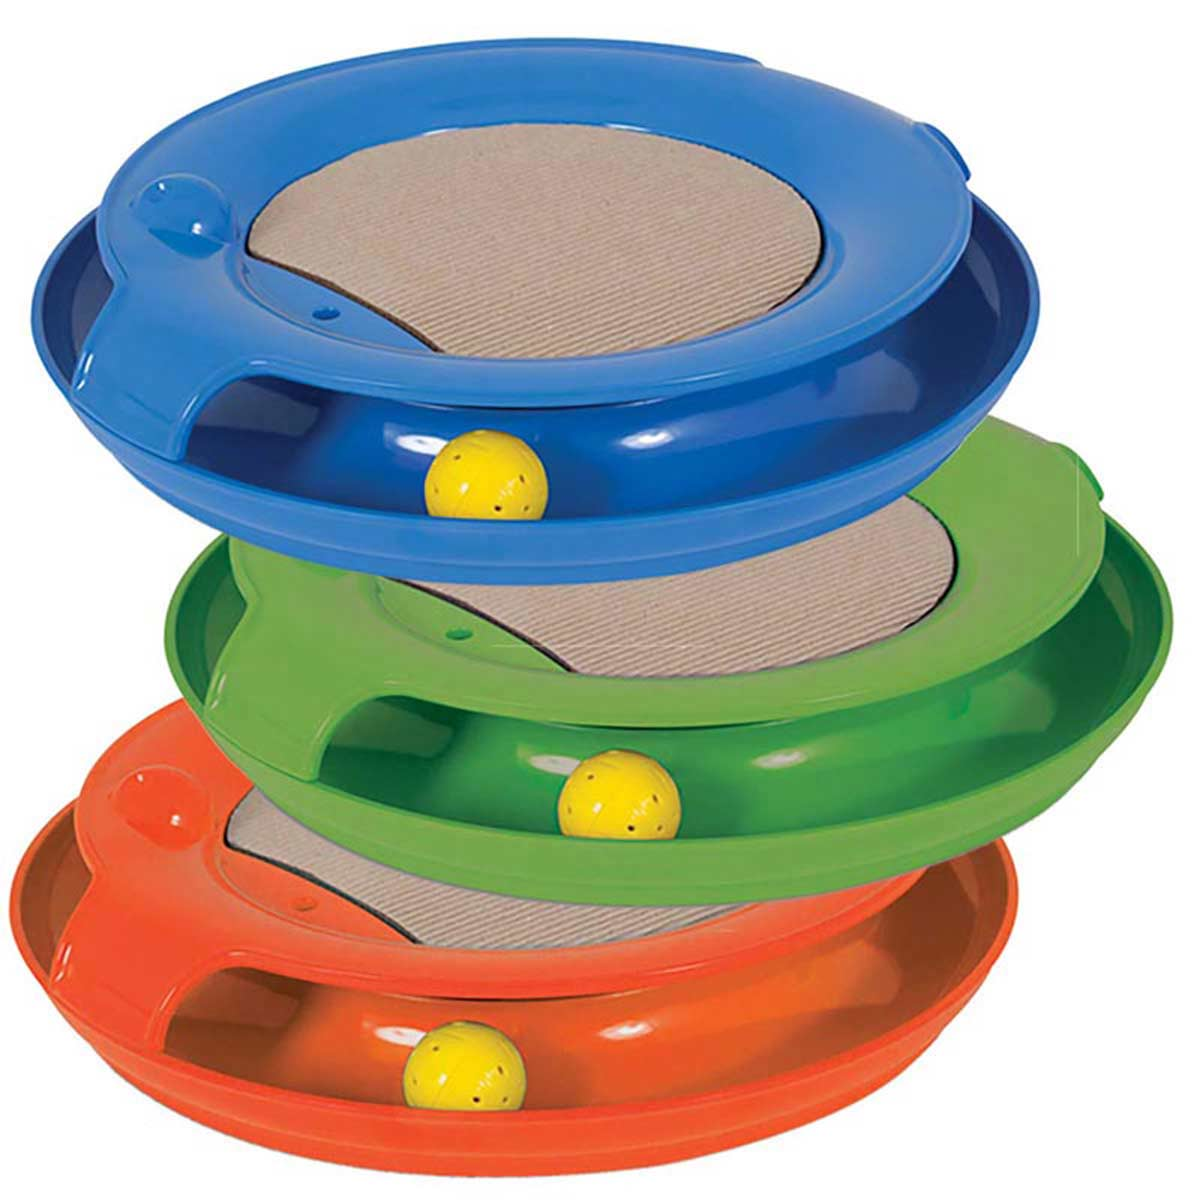 Jackson Galaxy Spiral Cat Toy - Assorted Colors - Blue, Green, and Orange